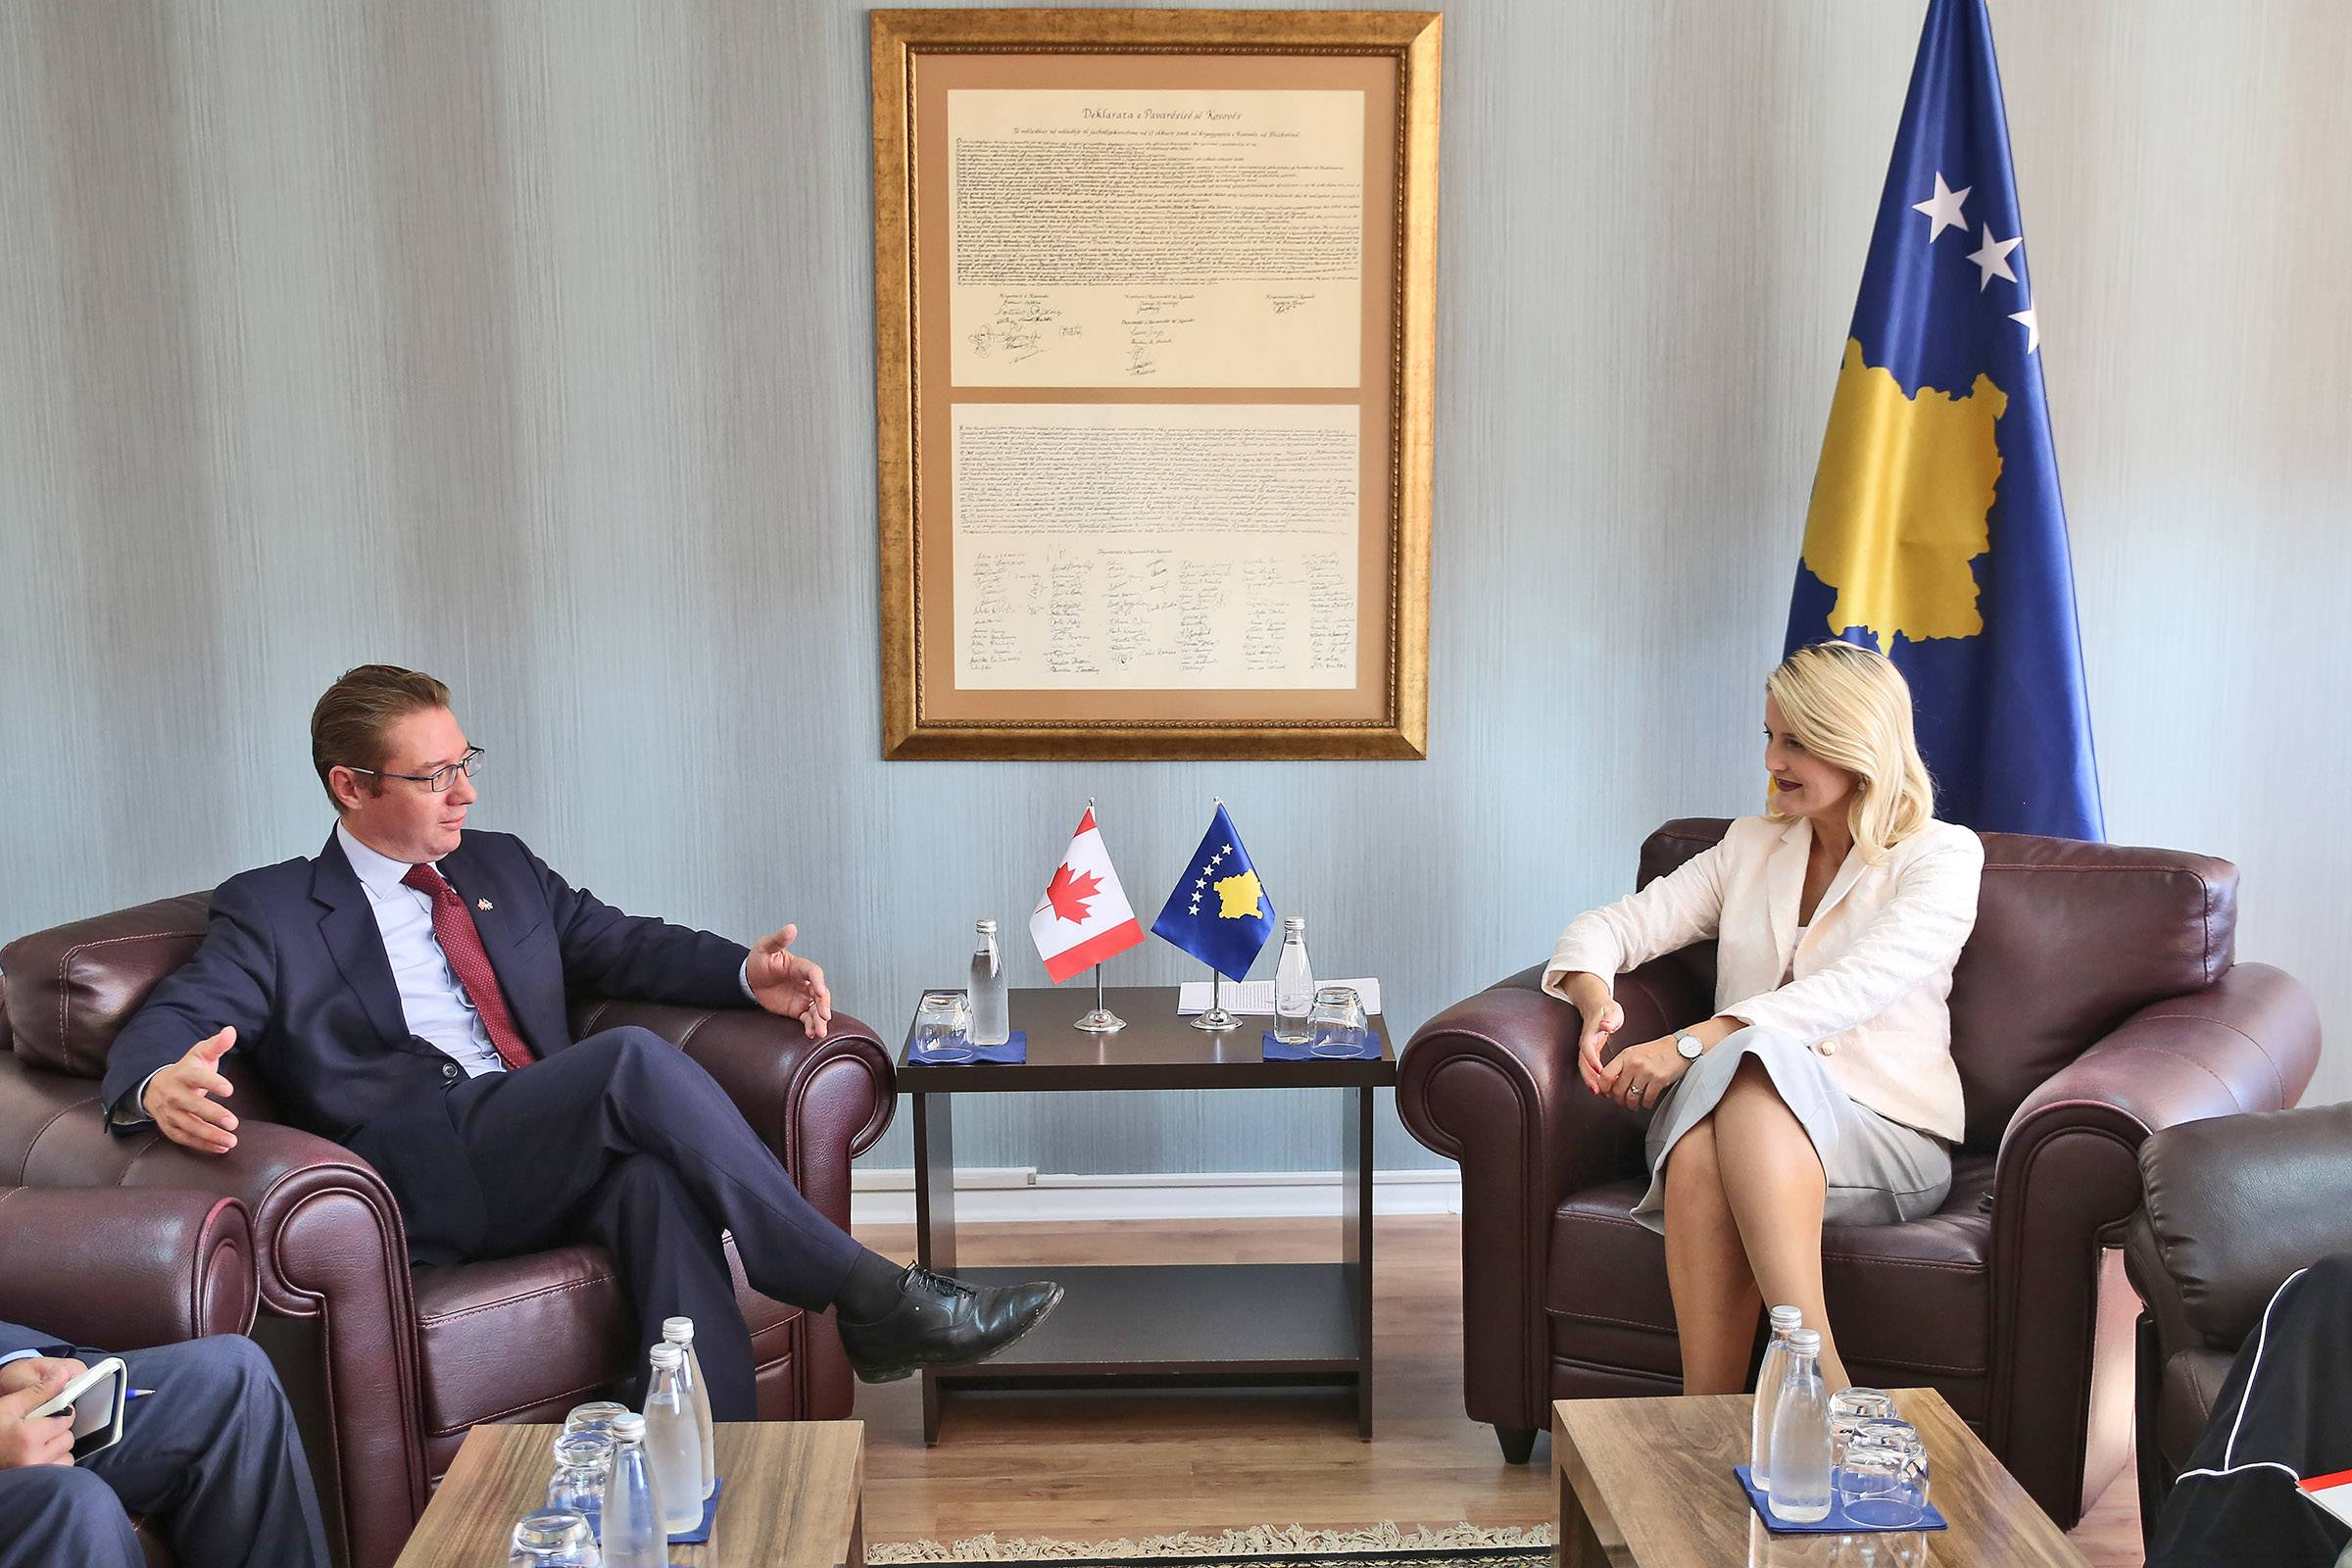 Minister Hoxha hosted Ambassador Maksymiuk in a meeting, Kosovo and Canada - an exemplary friendship